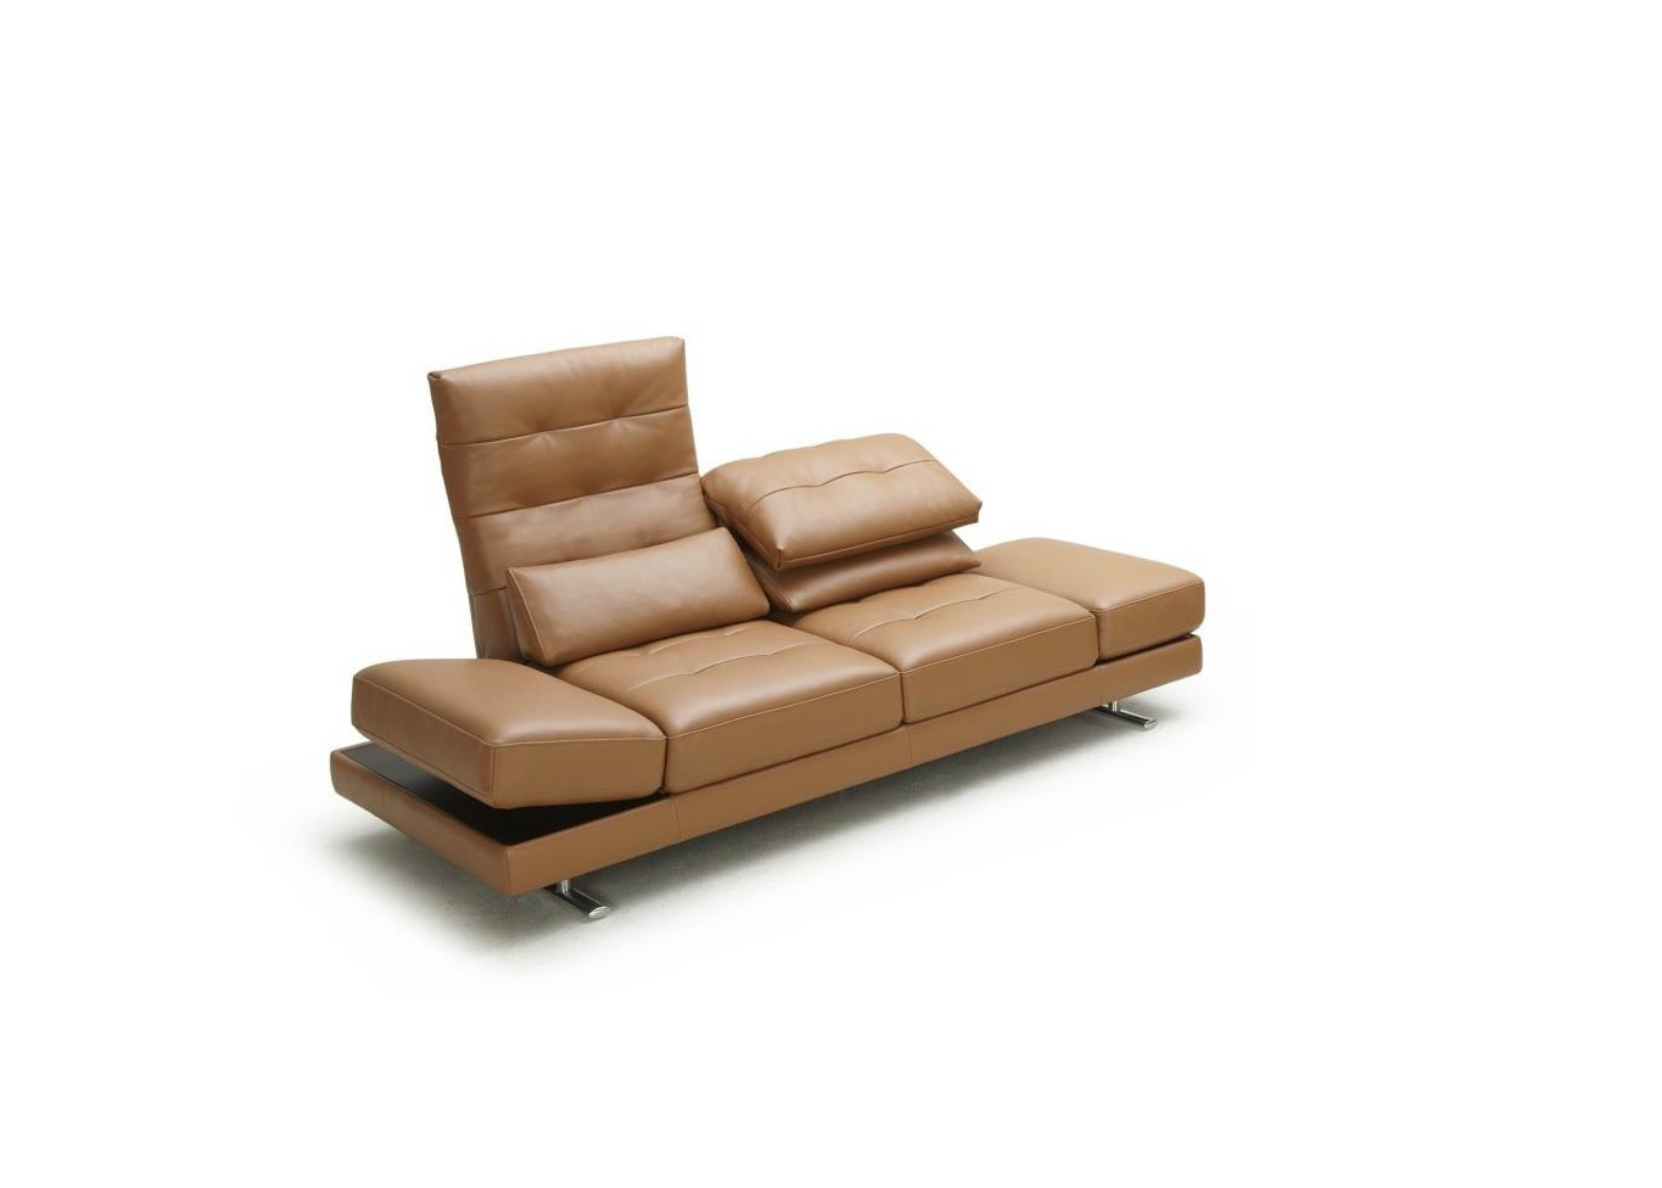 Lounge Sofa With Rotating Seats & Adjustable Armrests - Not